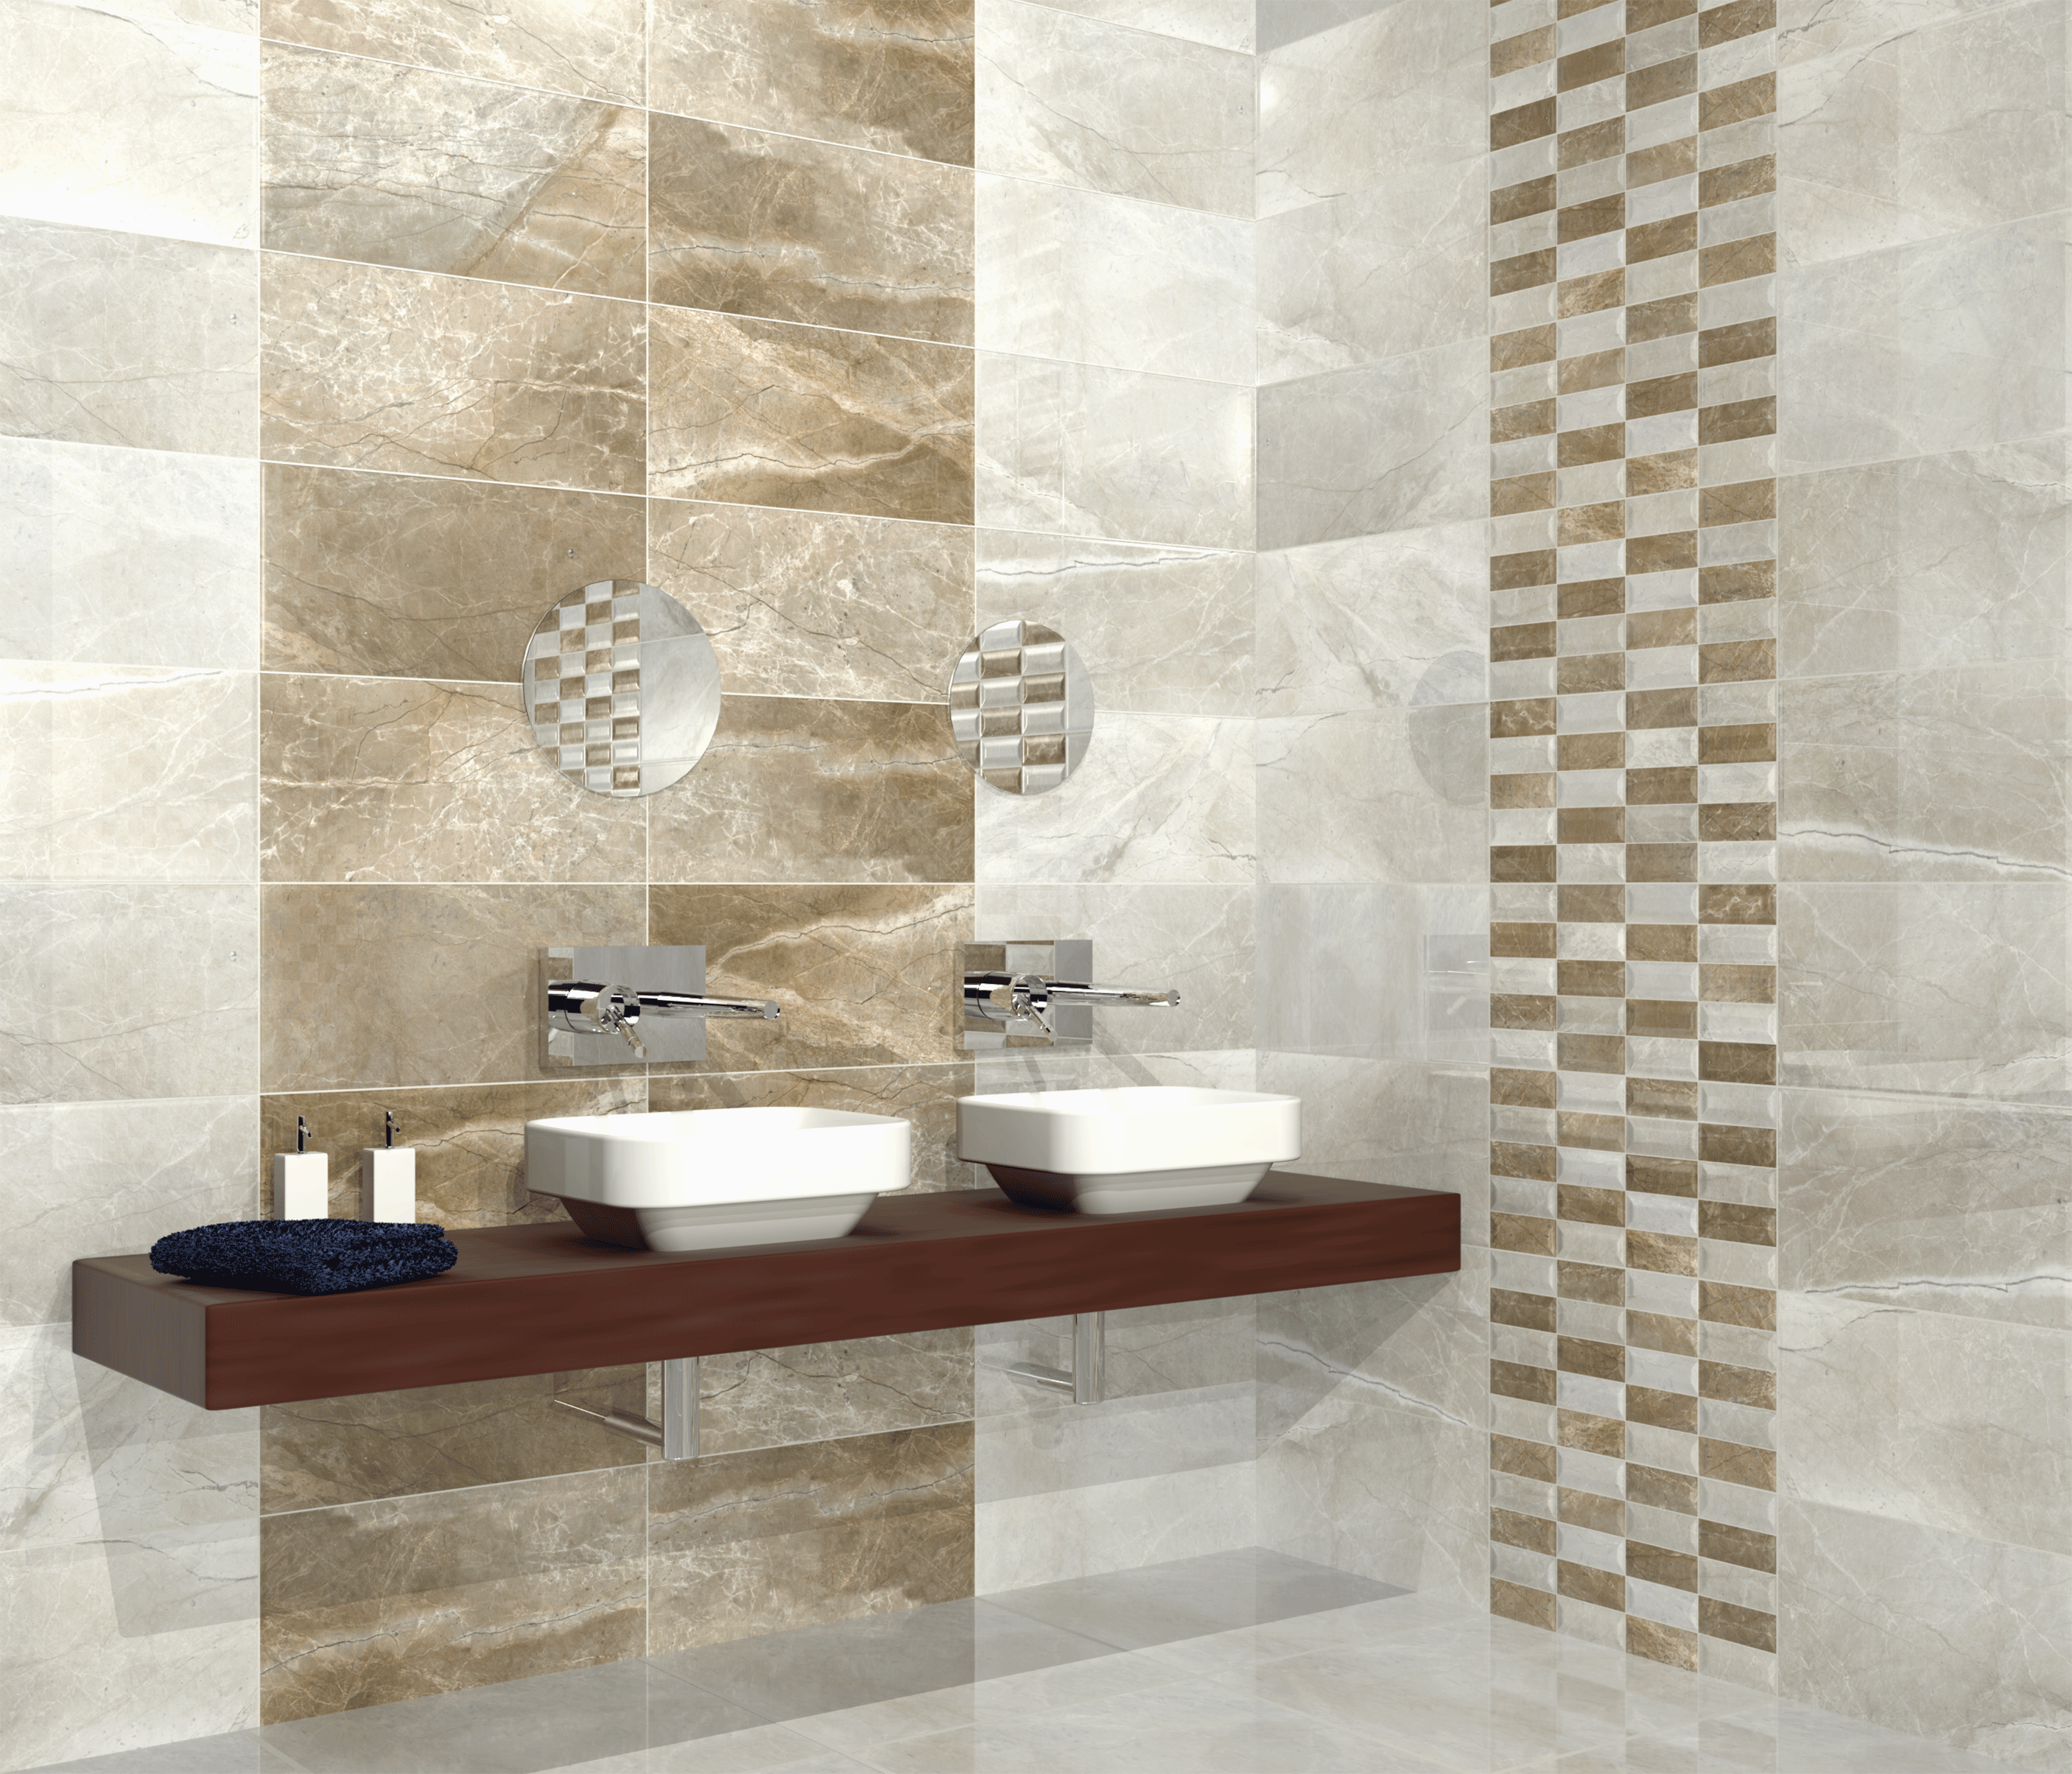 Bathroom Tile Herringbone Pattern Bathroomtileskajaria Bathroom Wall Tile Design Bathroom Wall Tile Bathroom Tile Designs